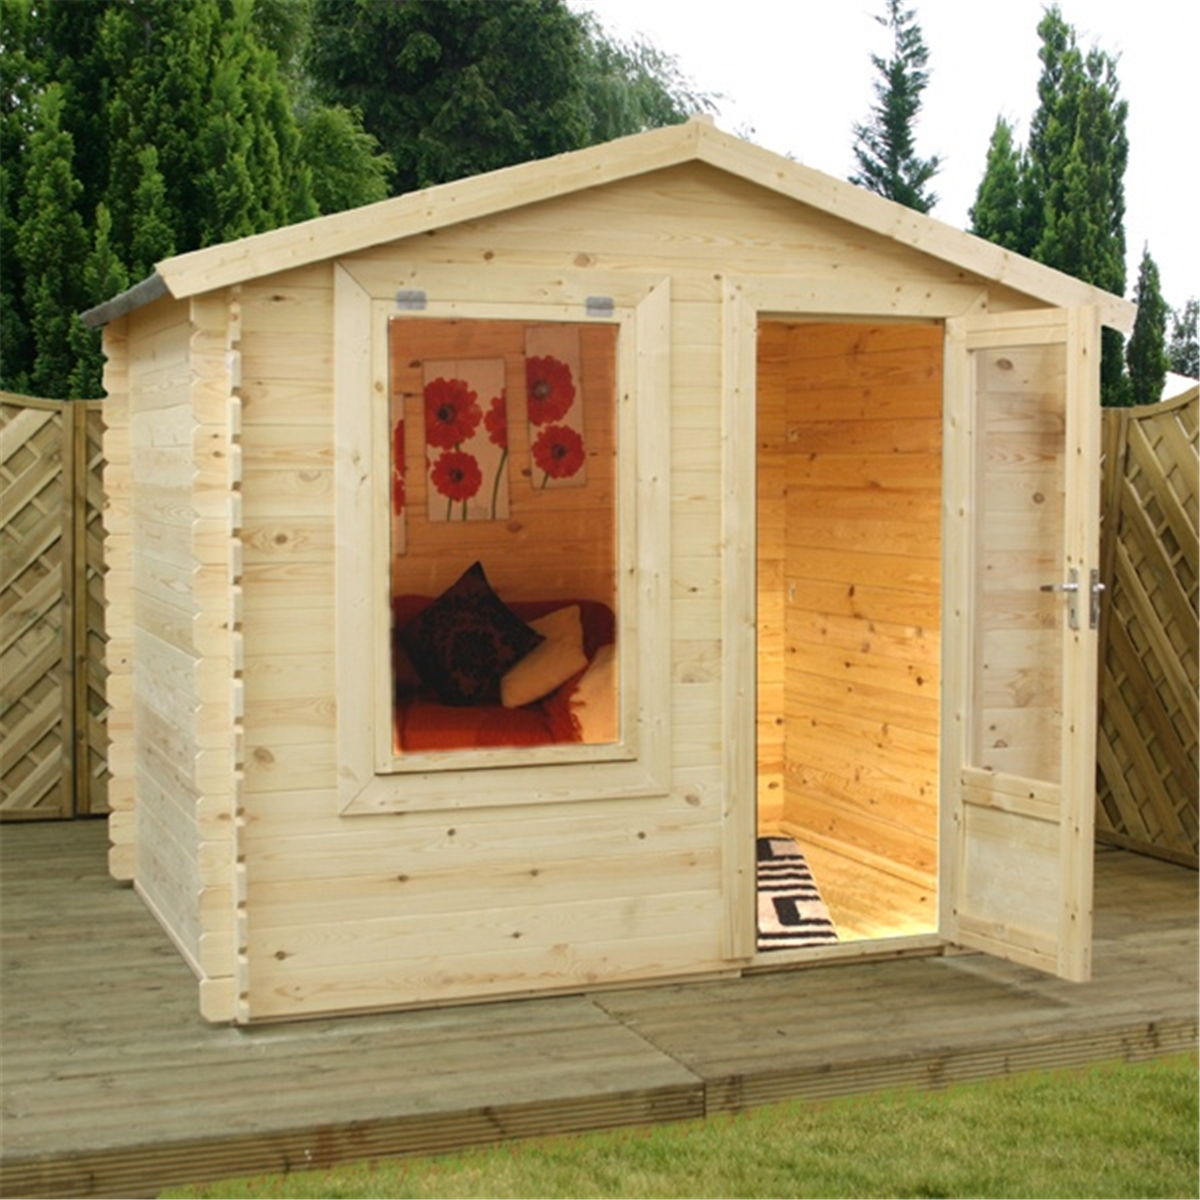 Superb img of Cabins : 2.50m x 2.00m Value Log Cabin   Free Floor & Felt & Safety  with #BD740E color and 1200x1200 pixels